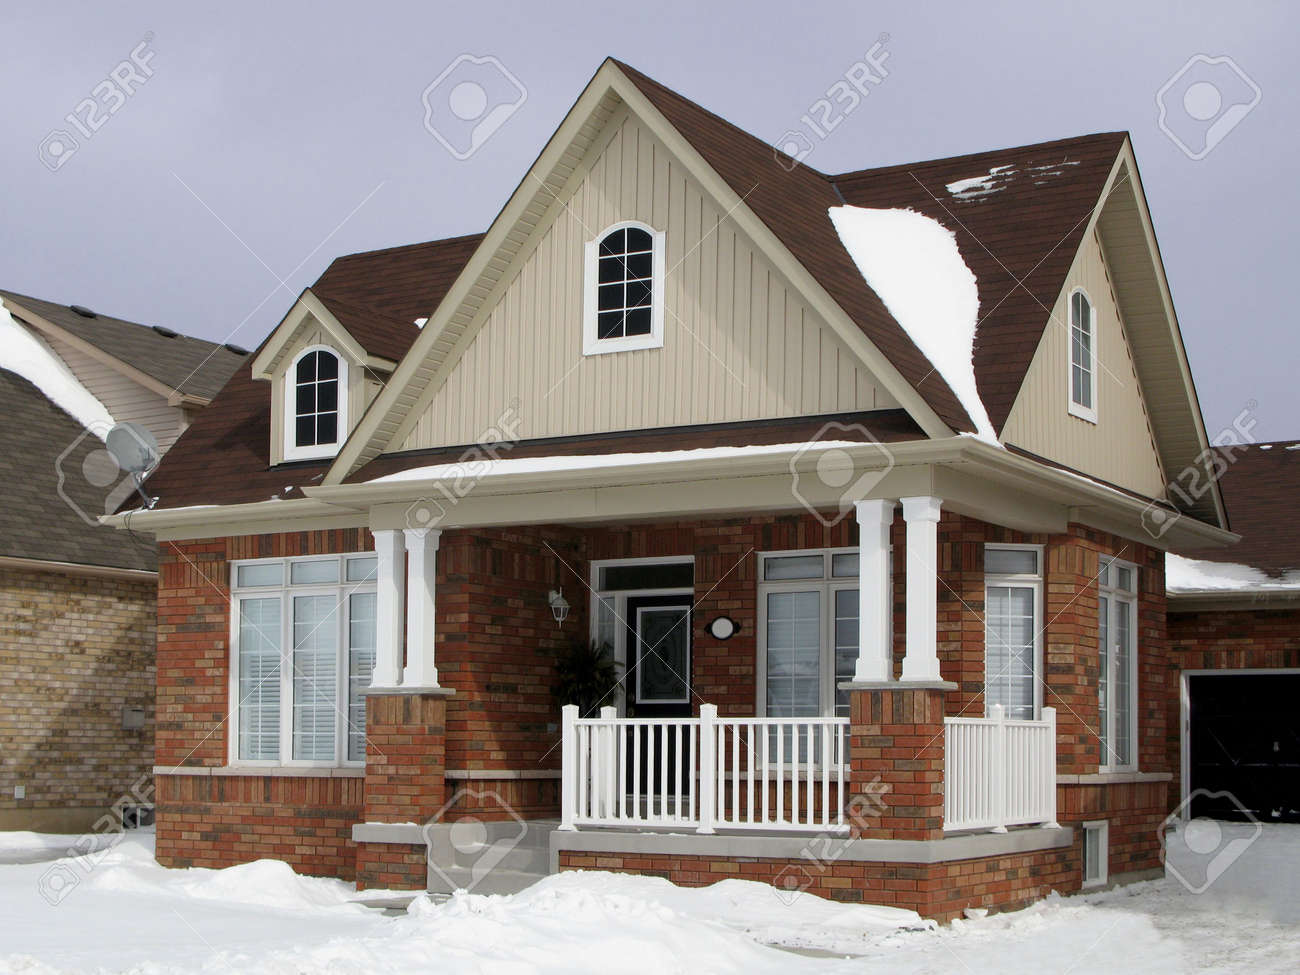 a small suburban house in winter stock photo picture and royalty